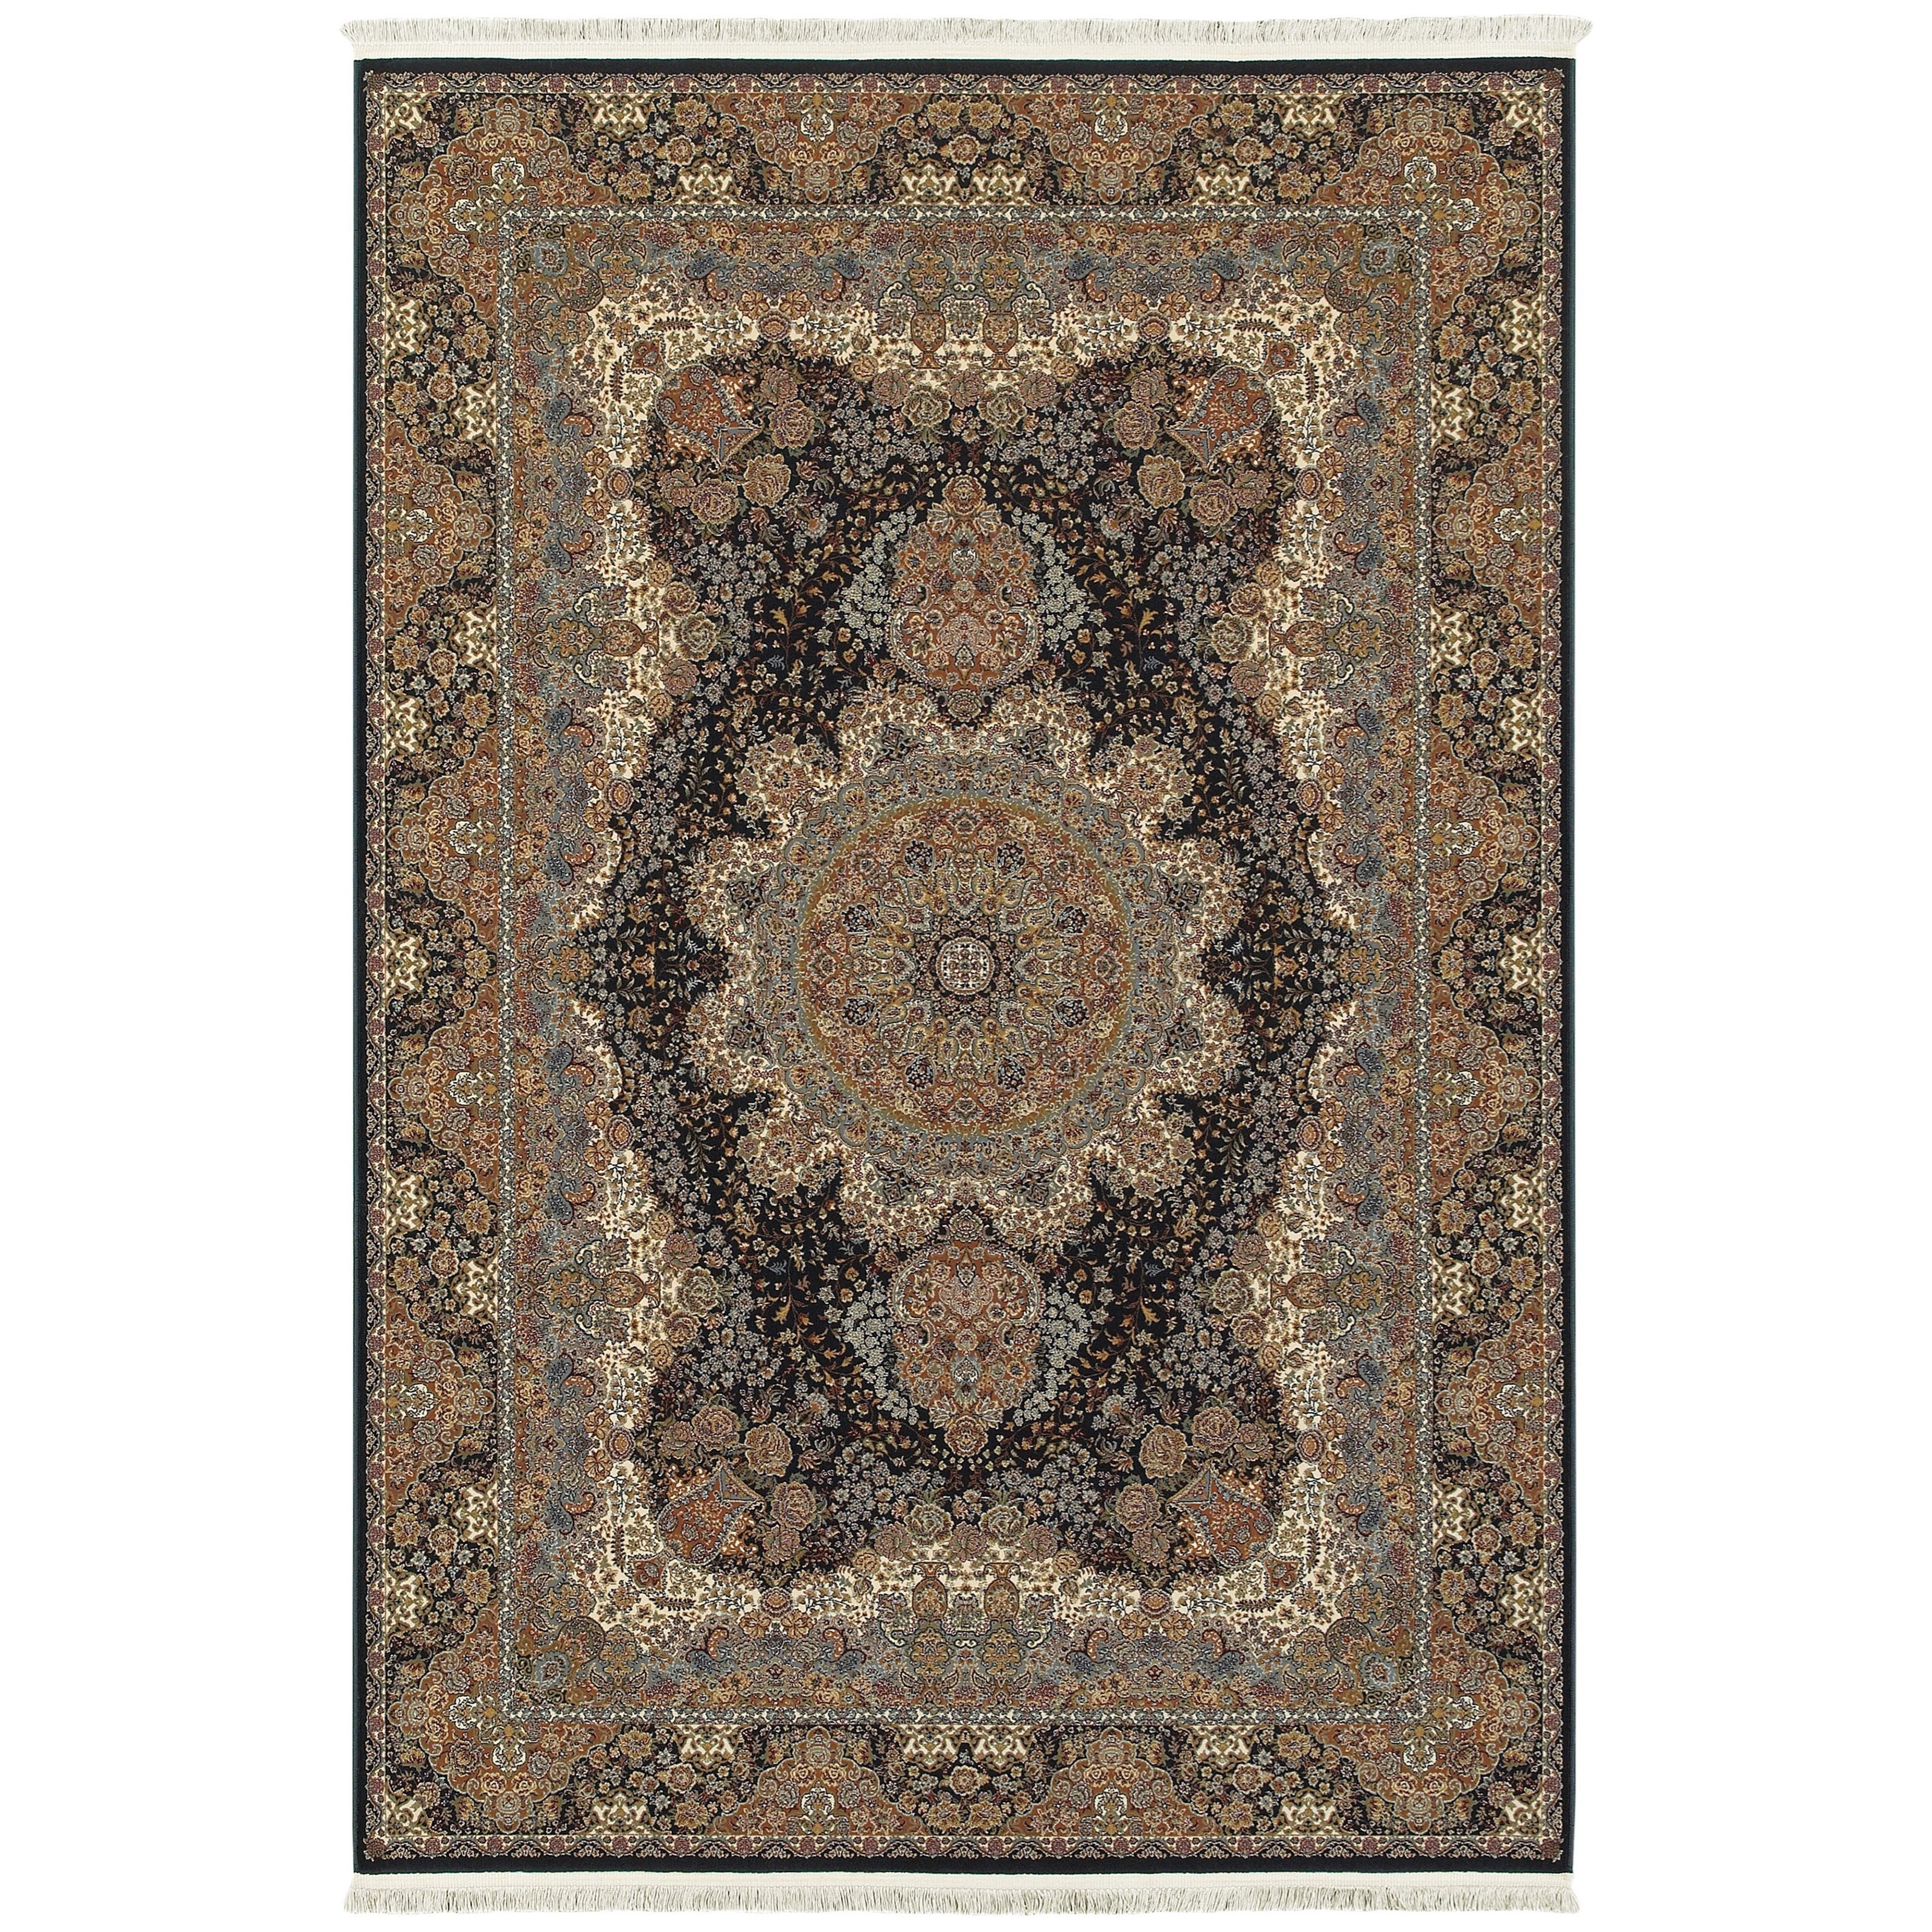 "Masterpiece 7'10"" X 10'10"" Rectangle Rug by Oriental Weavers at Steger's Furniture"